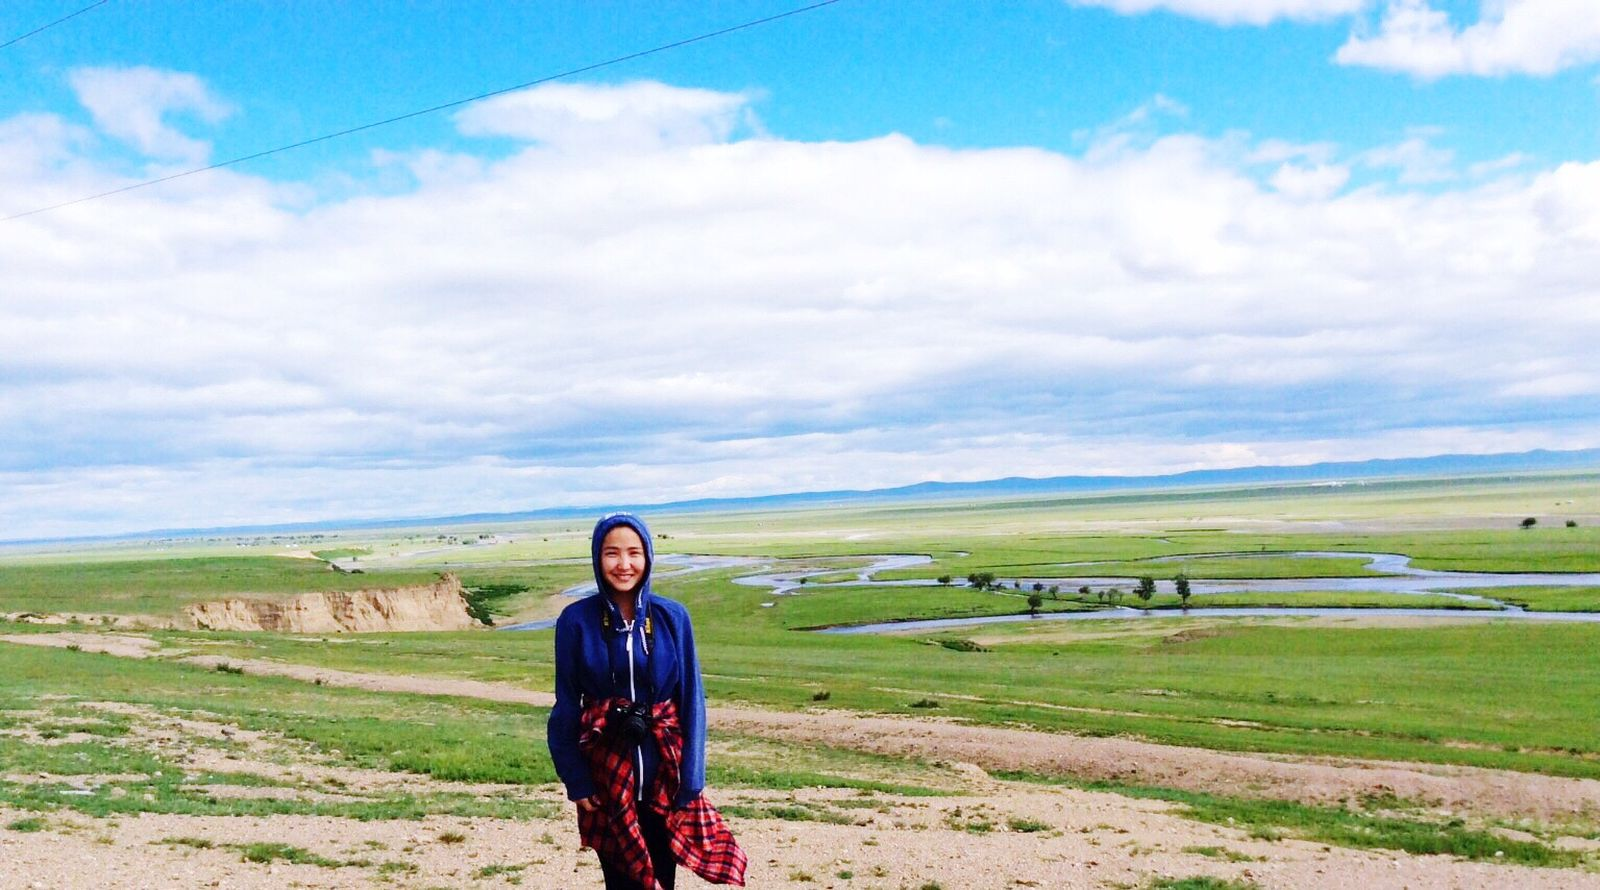 Summertime🌸 Mongoliancountryside LongRiver Widecountry Beautiful Nature